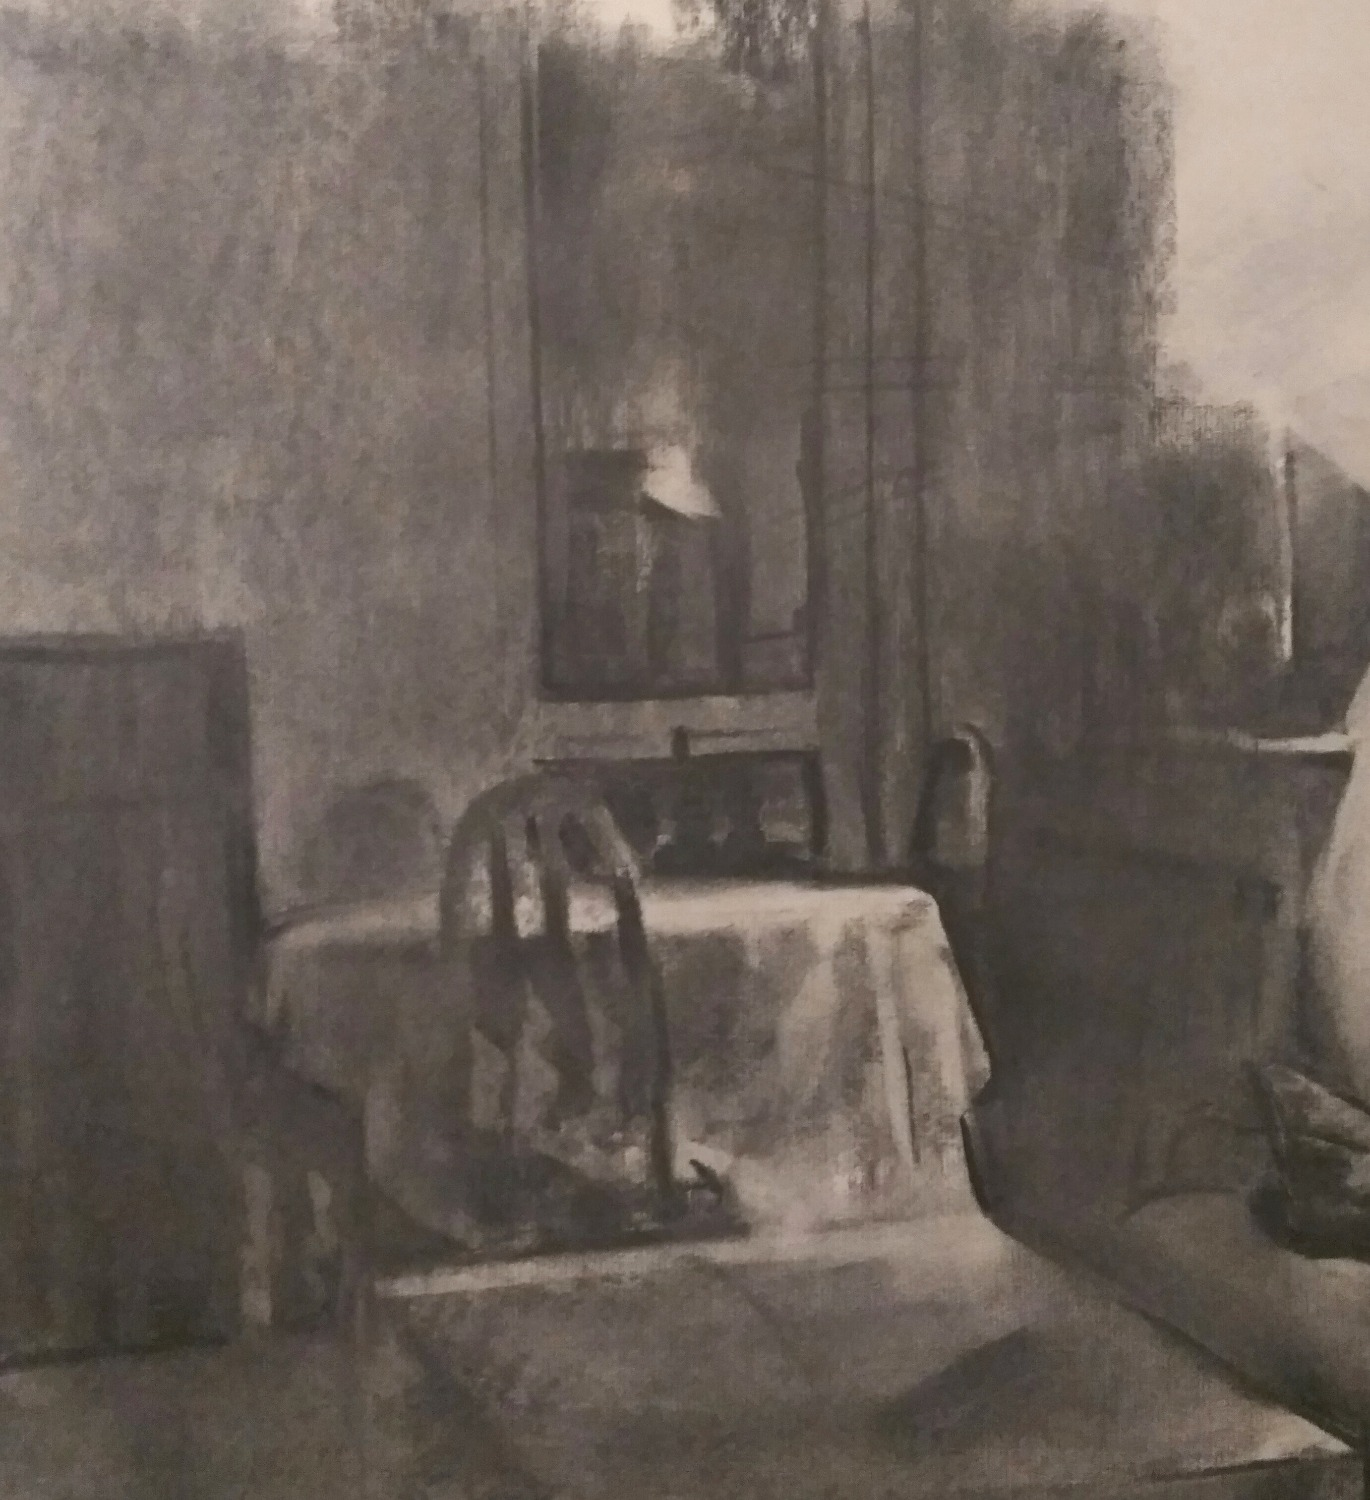 Living Room / Charcoal on Paper